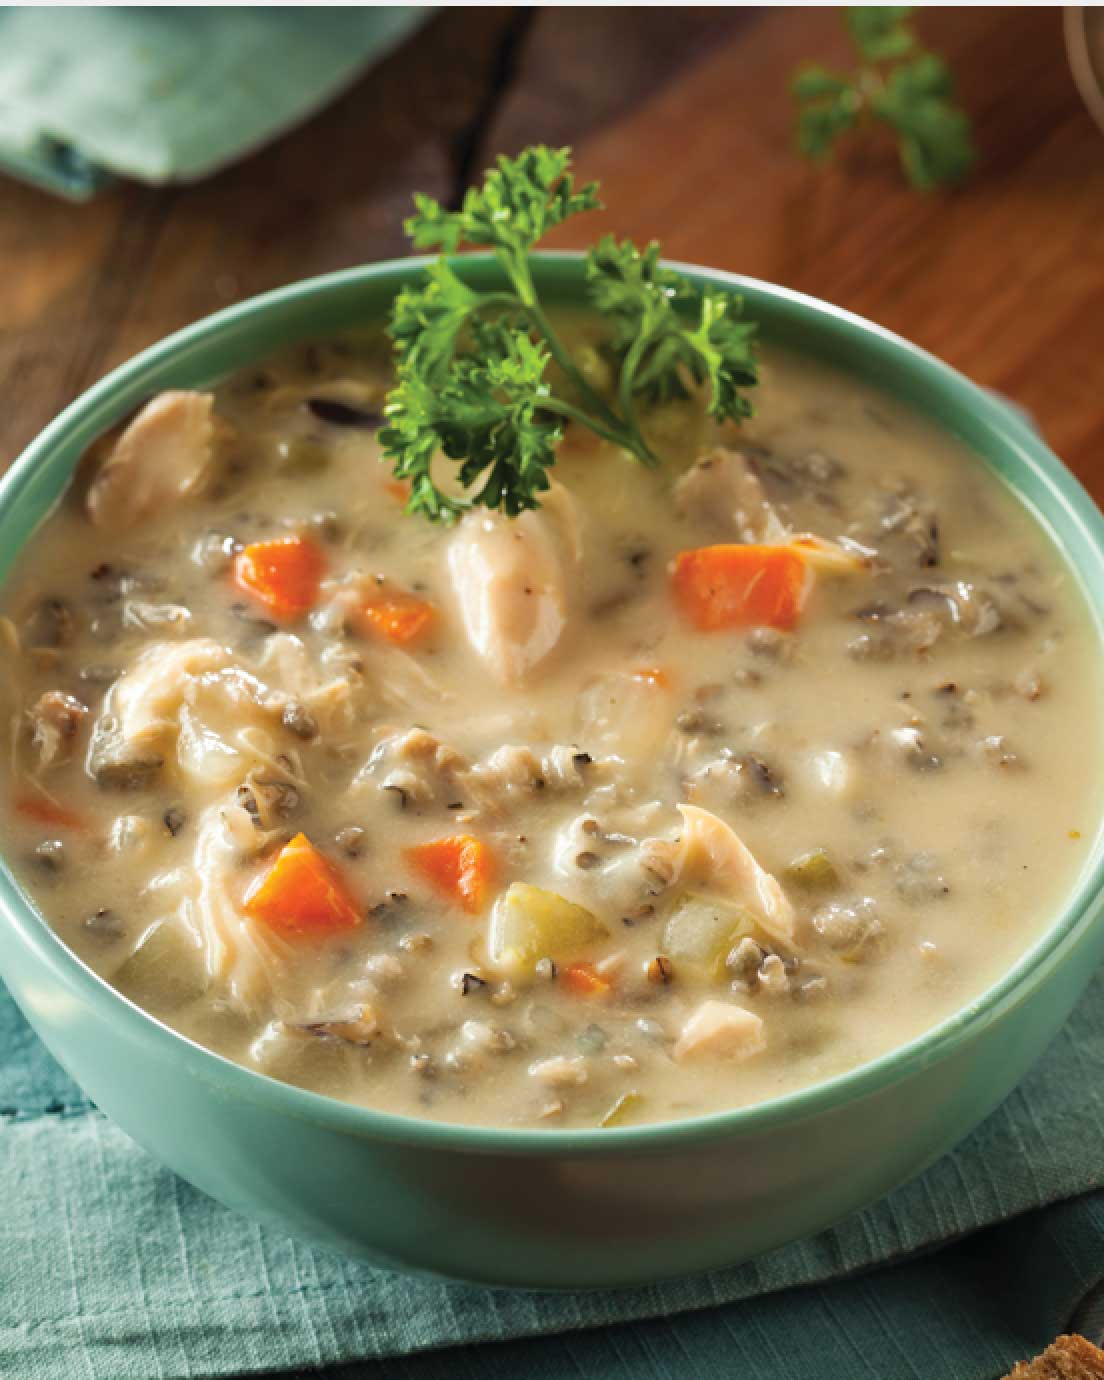 Slightly Spicy Wild Rice Soup